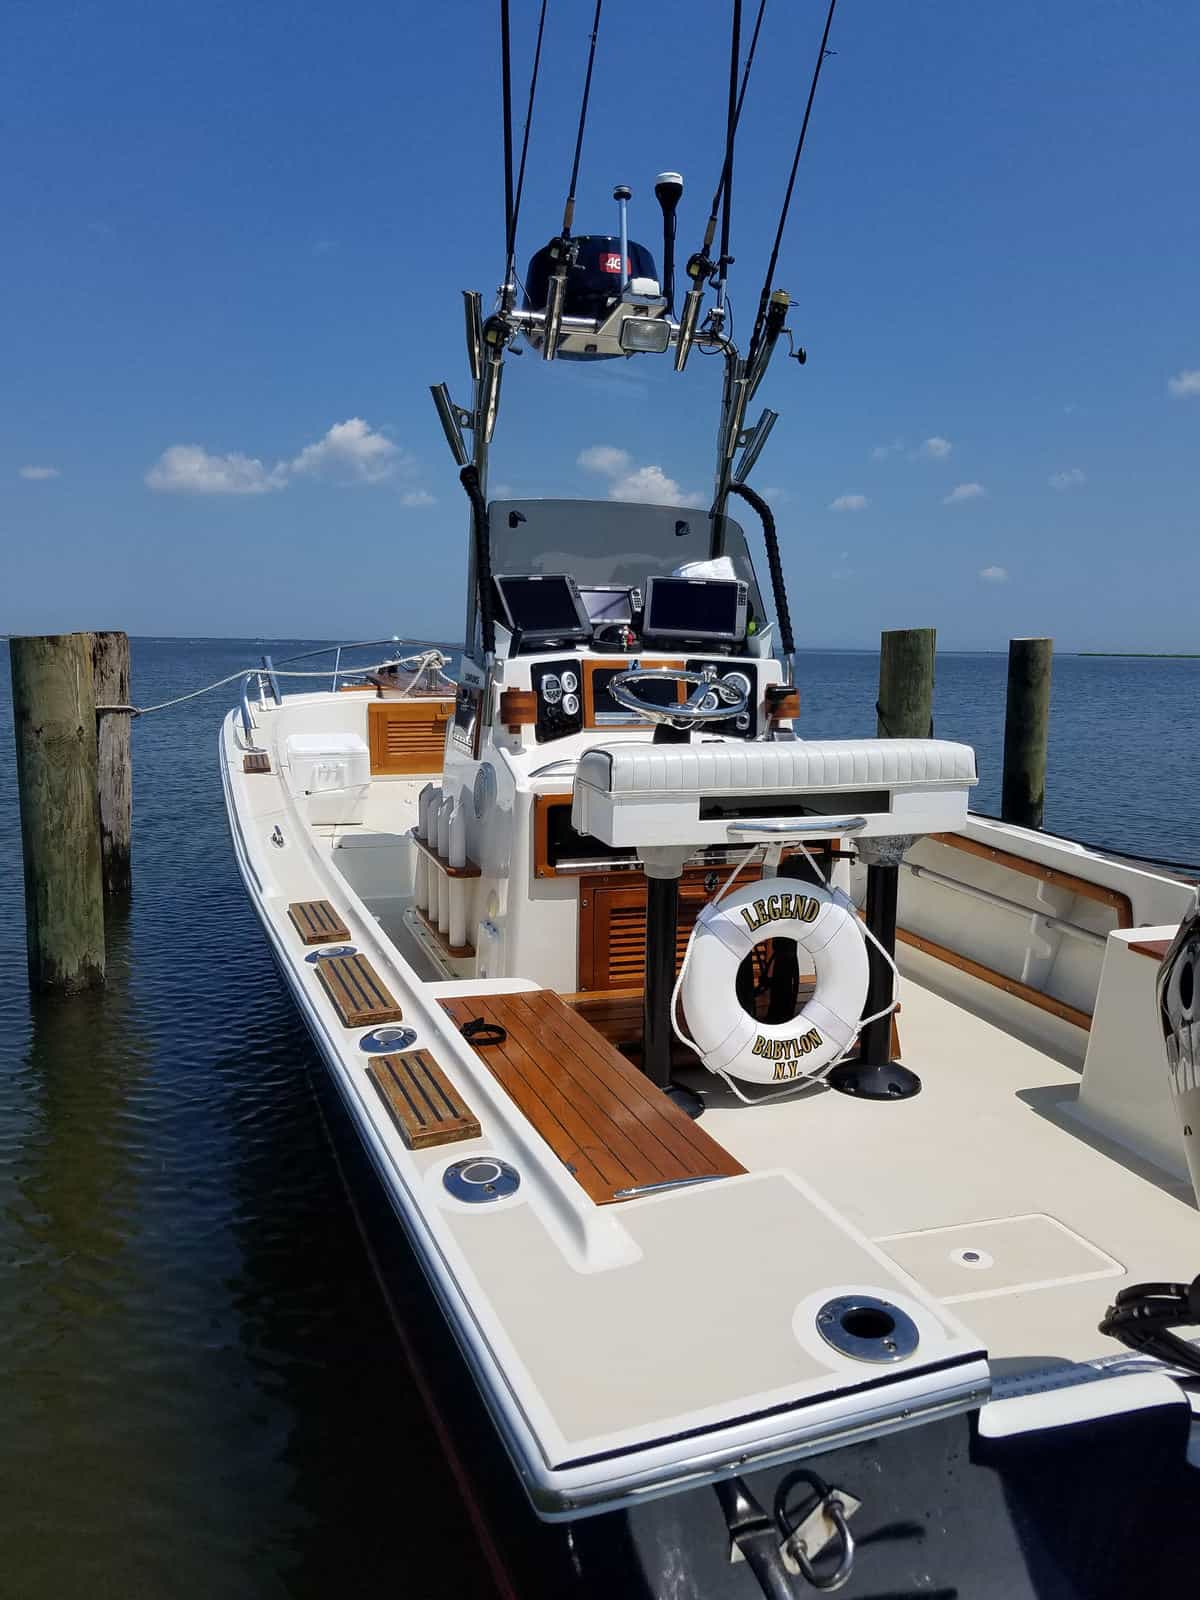 USED 1973 Mako 23CC - Great Bay Marine